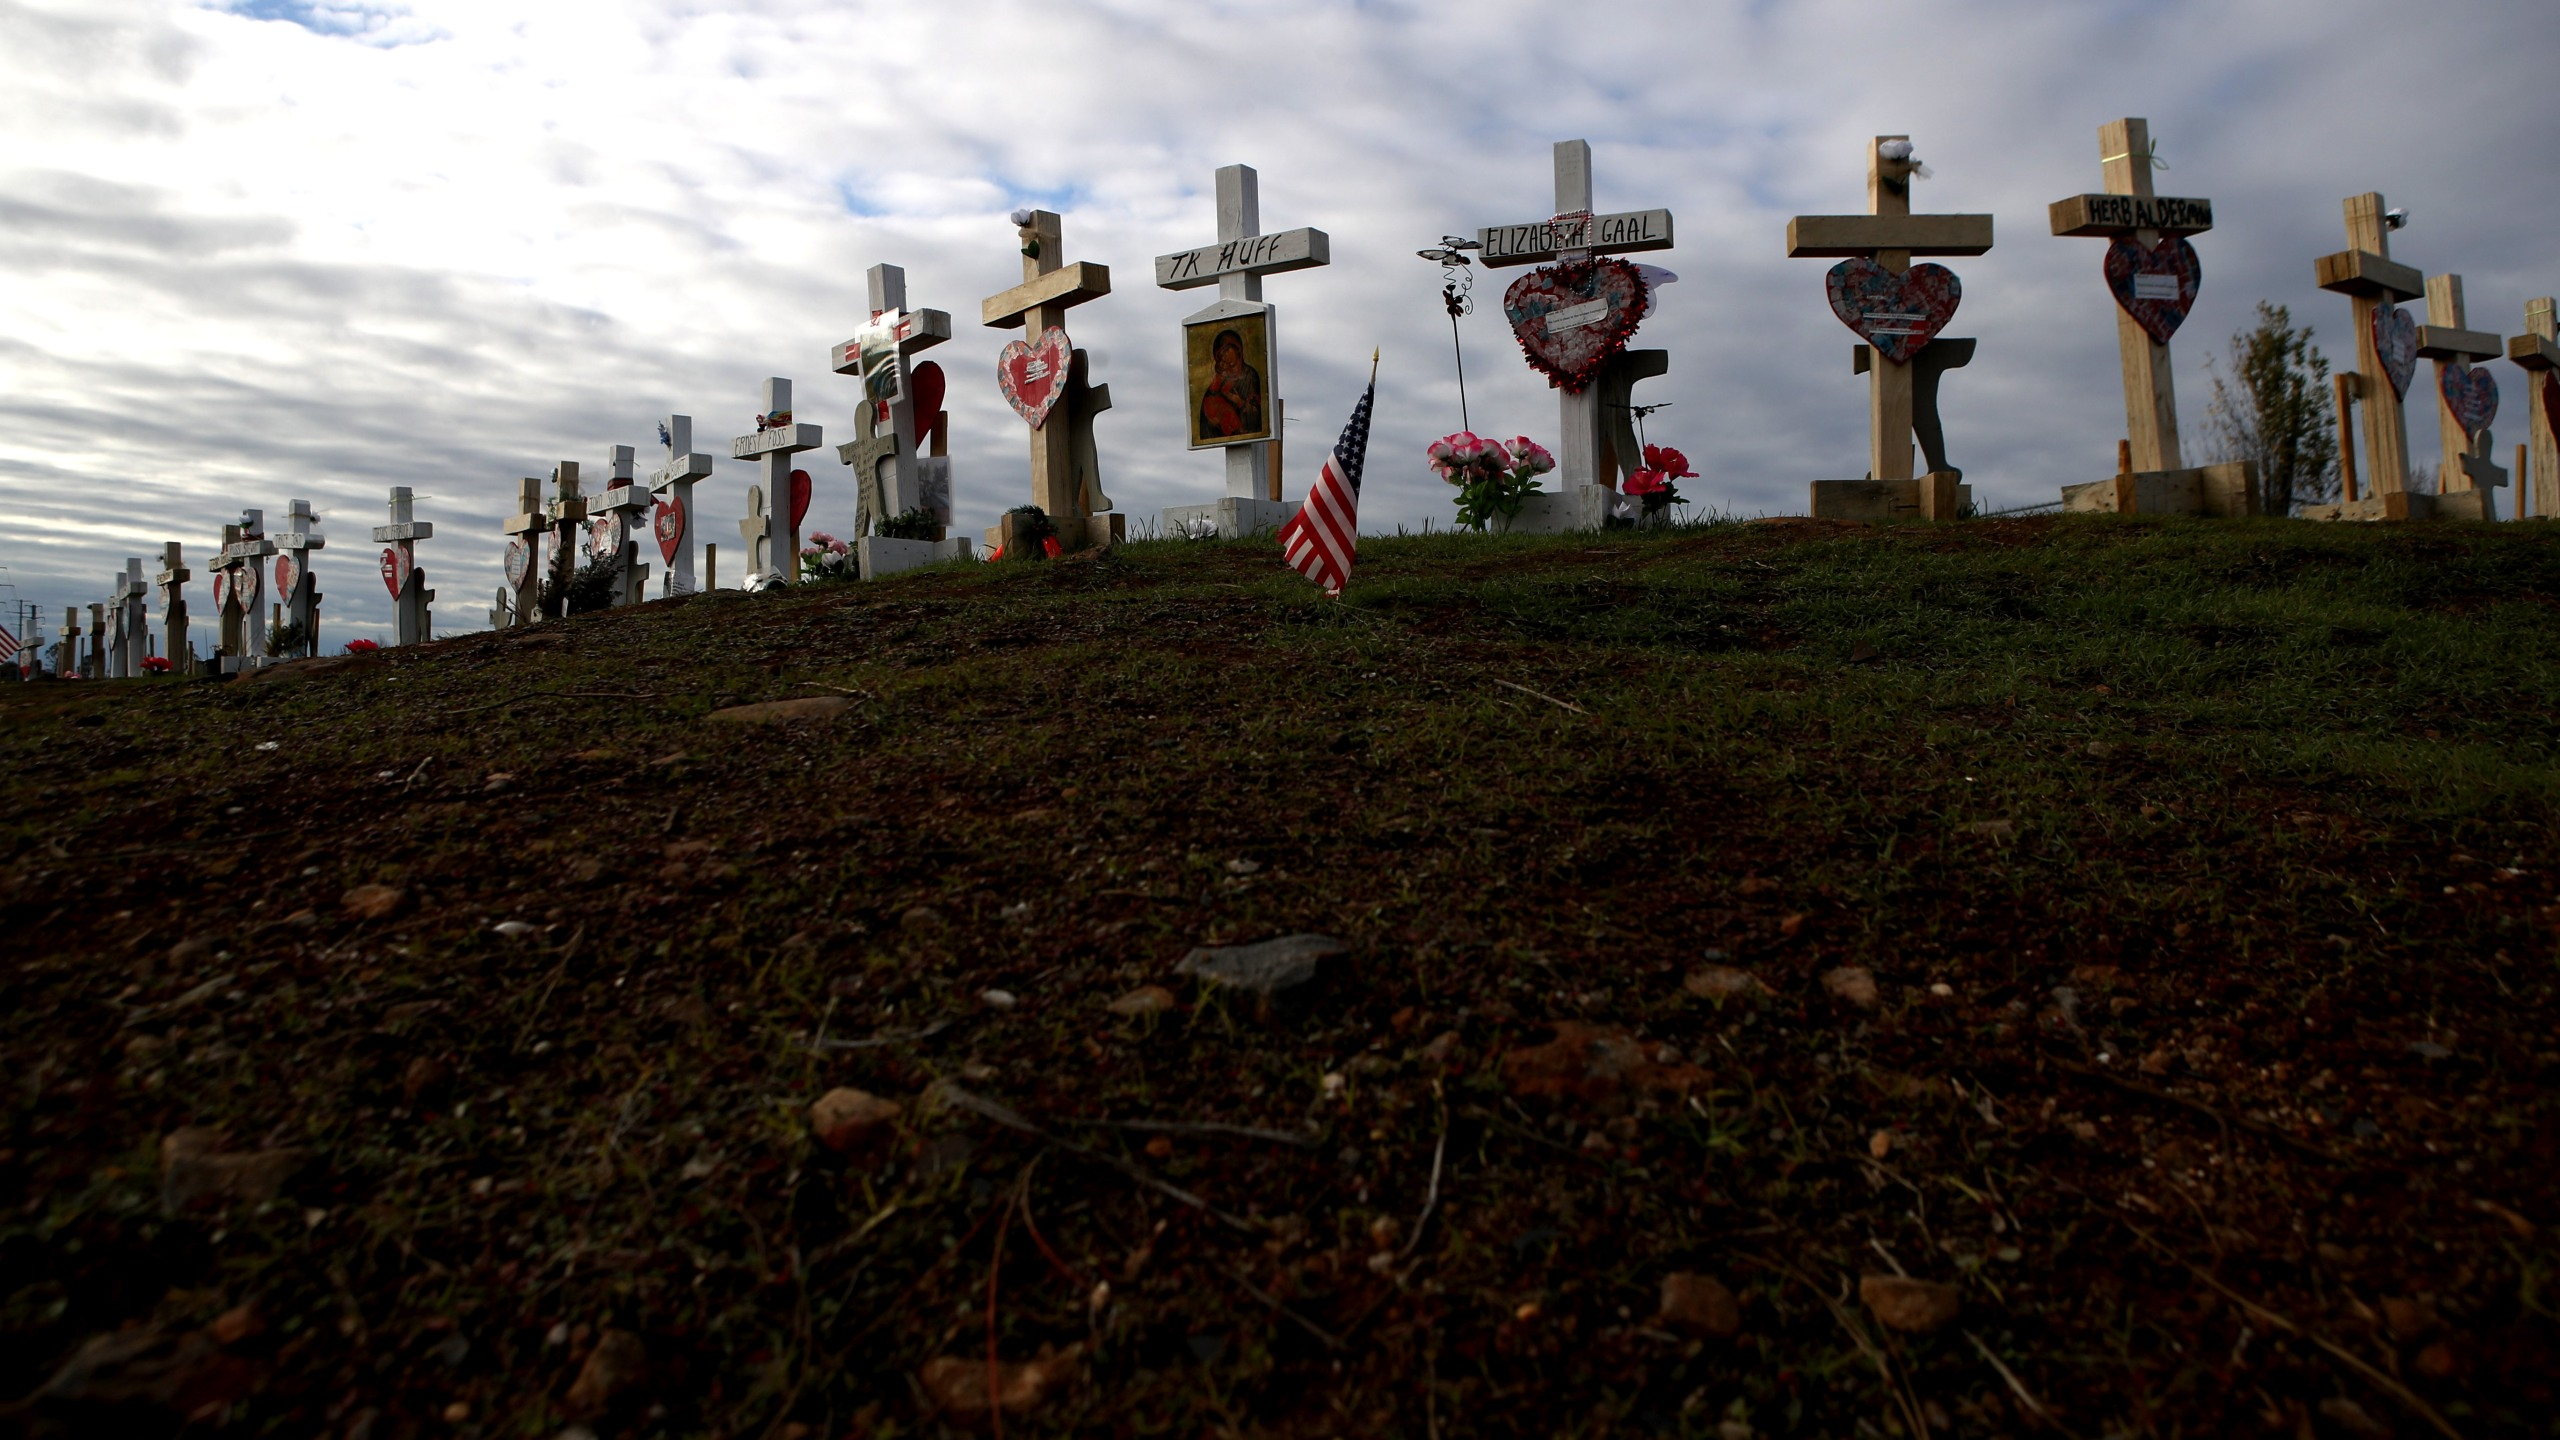 A memorial of wooden crosses line the side of a road in Paradise on Feb. 11, 2019, in honor of those who lost their lives during the Camp Fire. (Credit: Justin Sullivan / Getty Images)